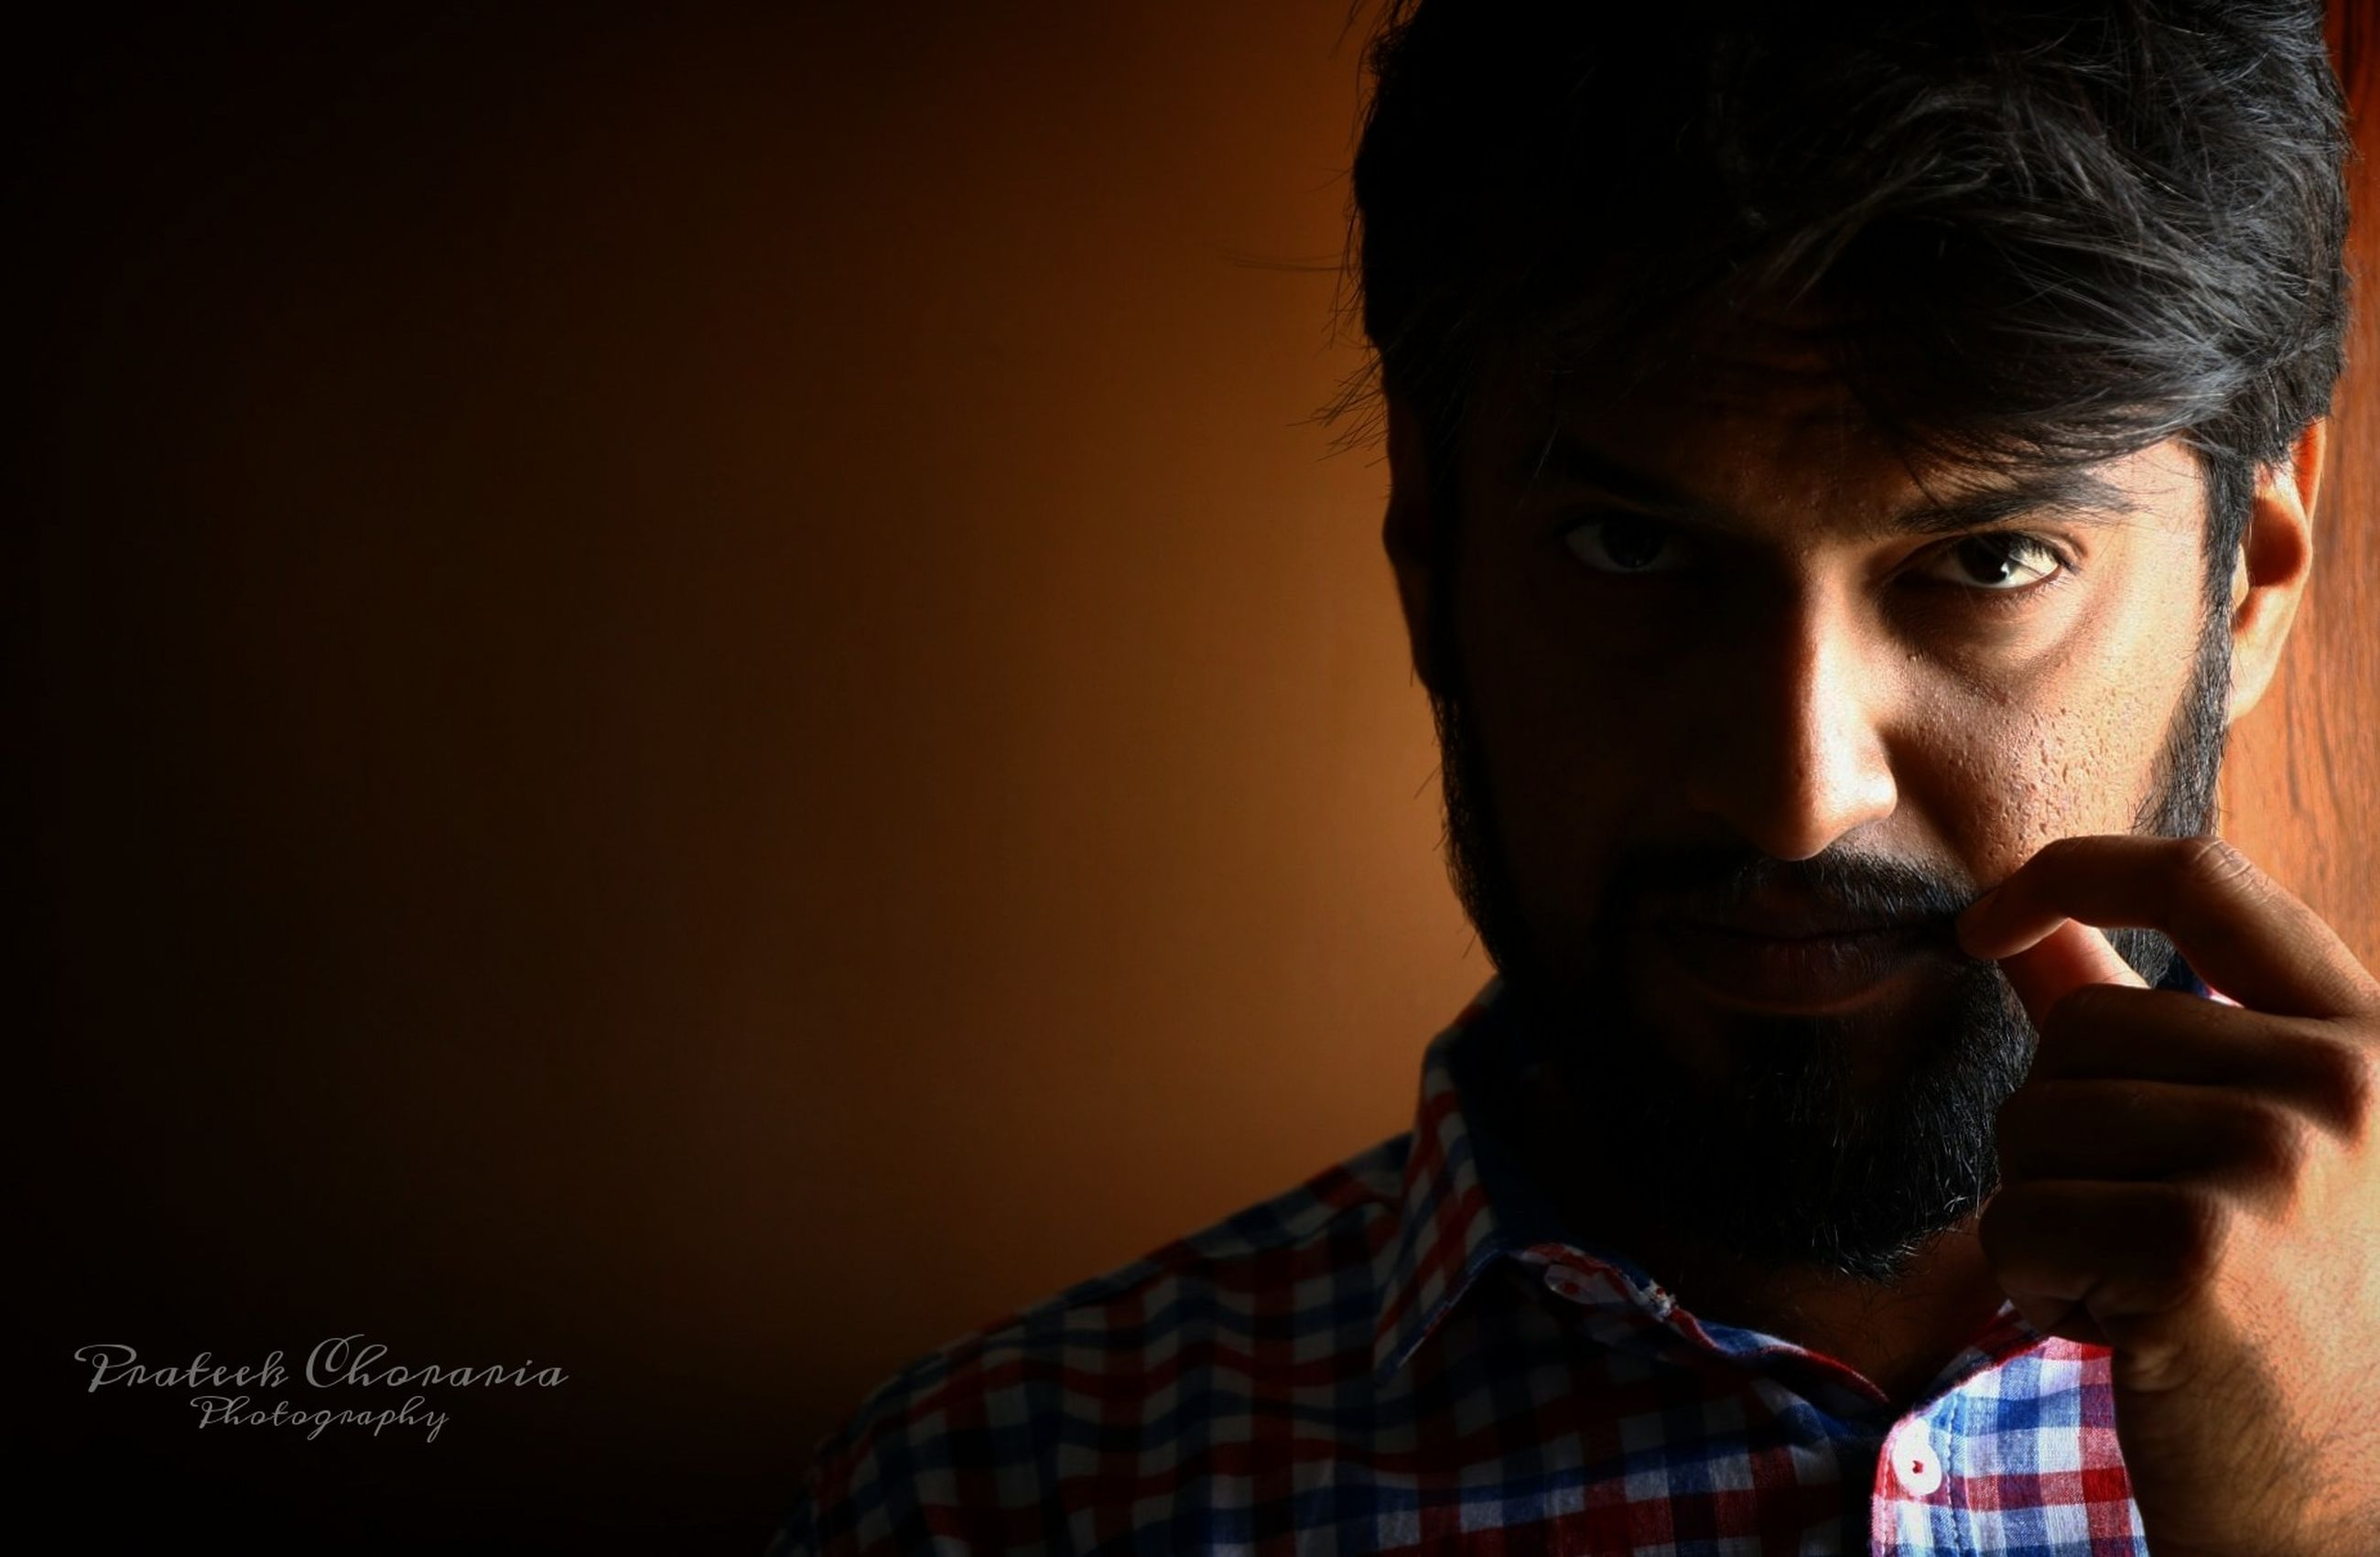 portrait, one person, headshot, young men, lifestyles, young adult, indoors, real people, facial hair, copy space, beard, front view, looking, communication, technology, close-up, looking at camera, body part, human face, mustache